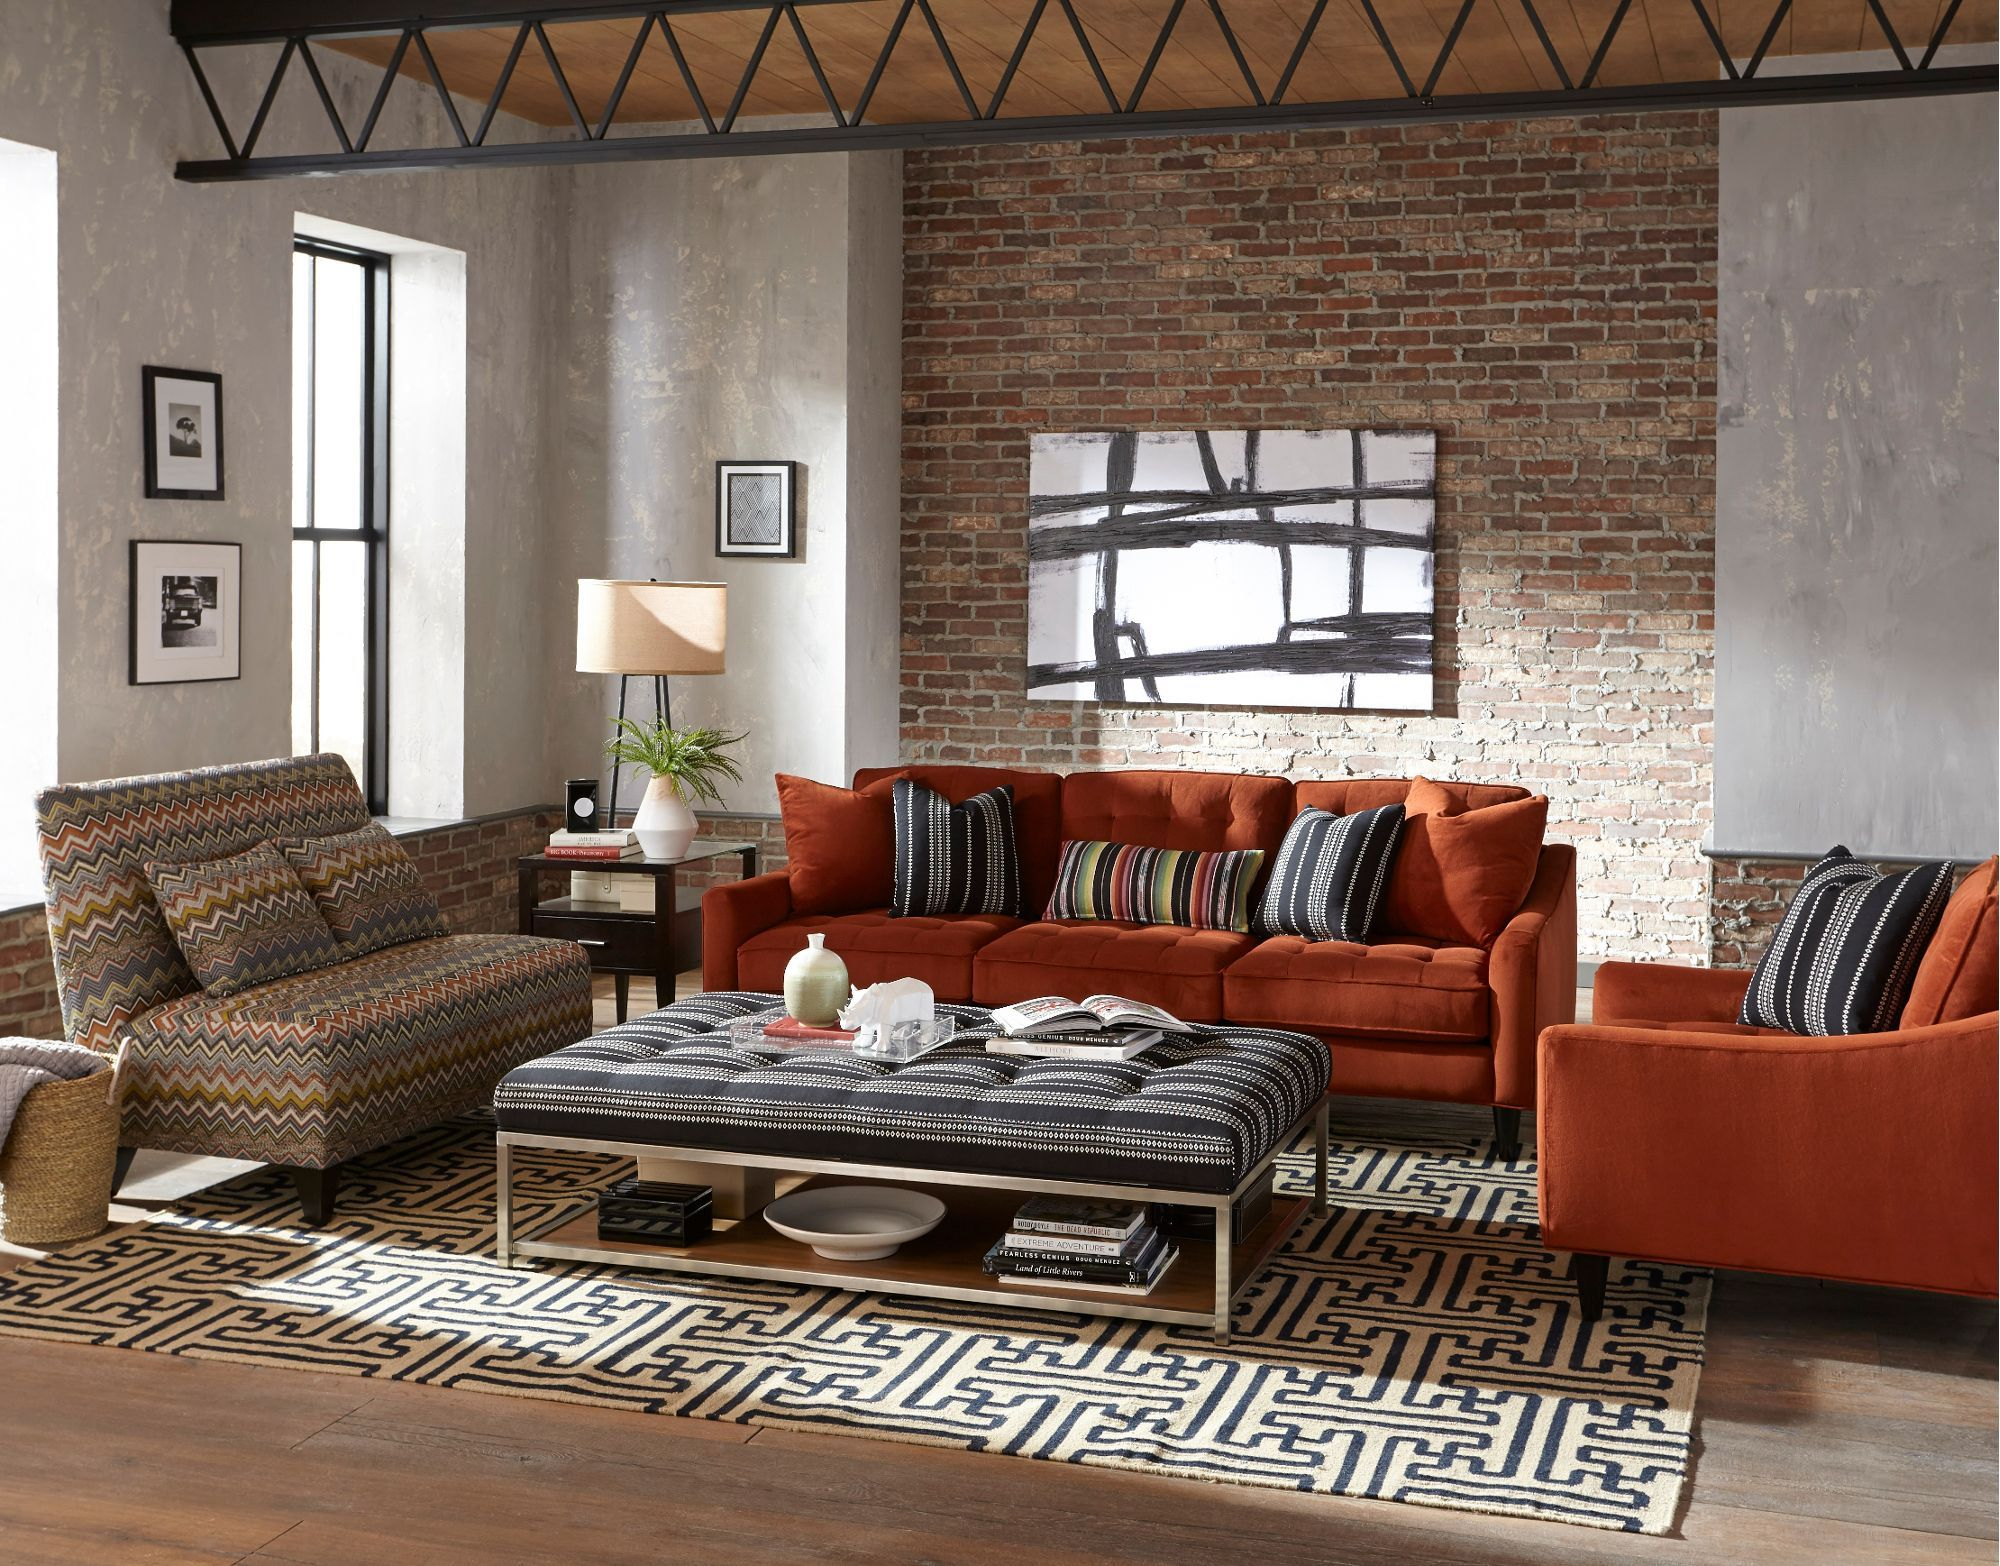 What An Amazing Living Room Love The Burnt Orange Sofa Against The Dark Panelled Wall And Galler Living Room Orange Living Room Designs Farm House Living Room